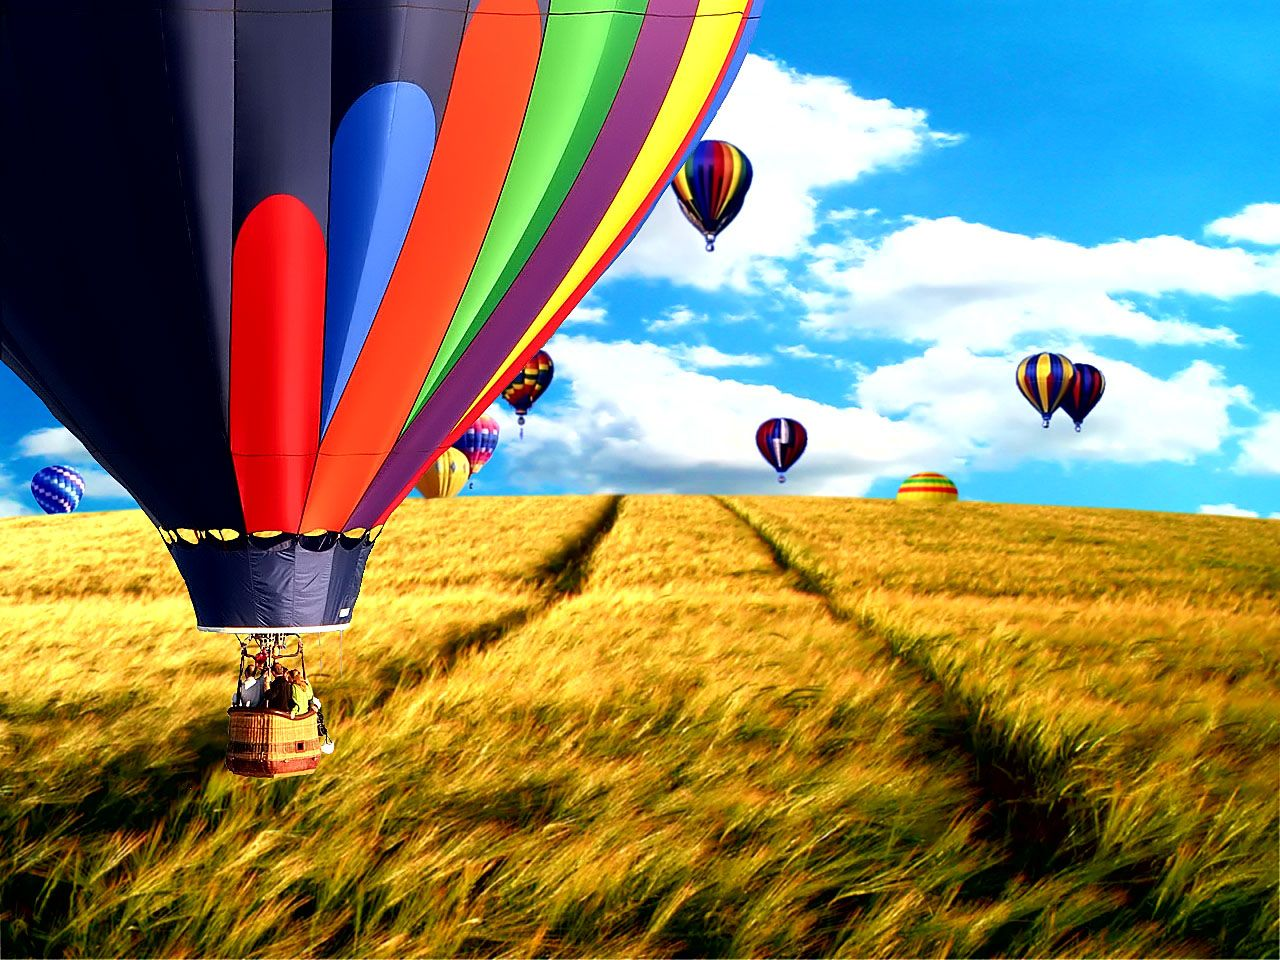 Hot Air Balloon Wallpaper Collection For Free Download HD